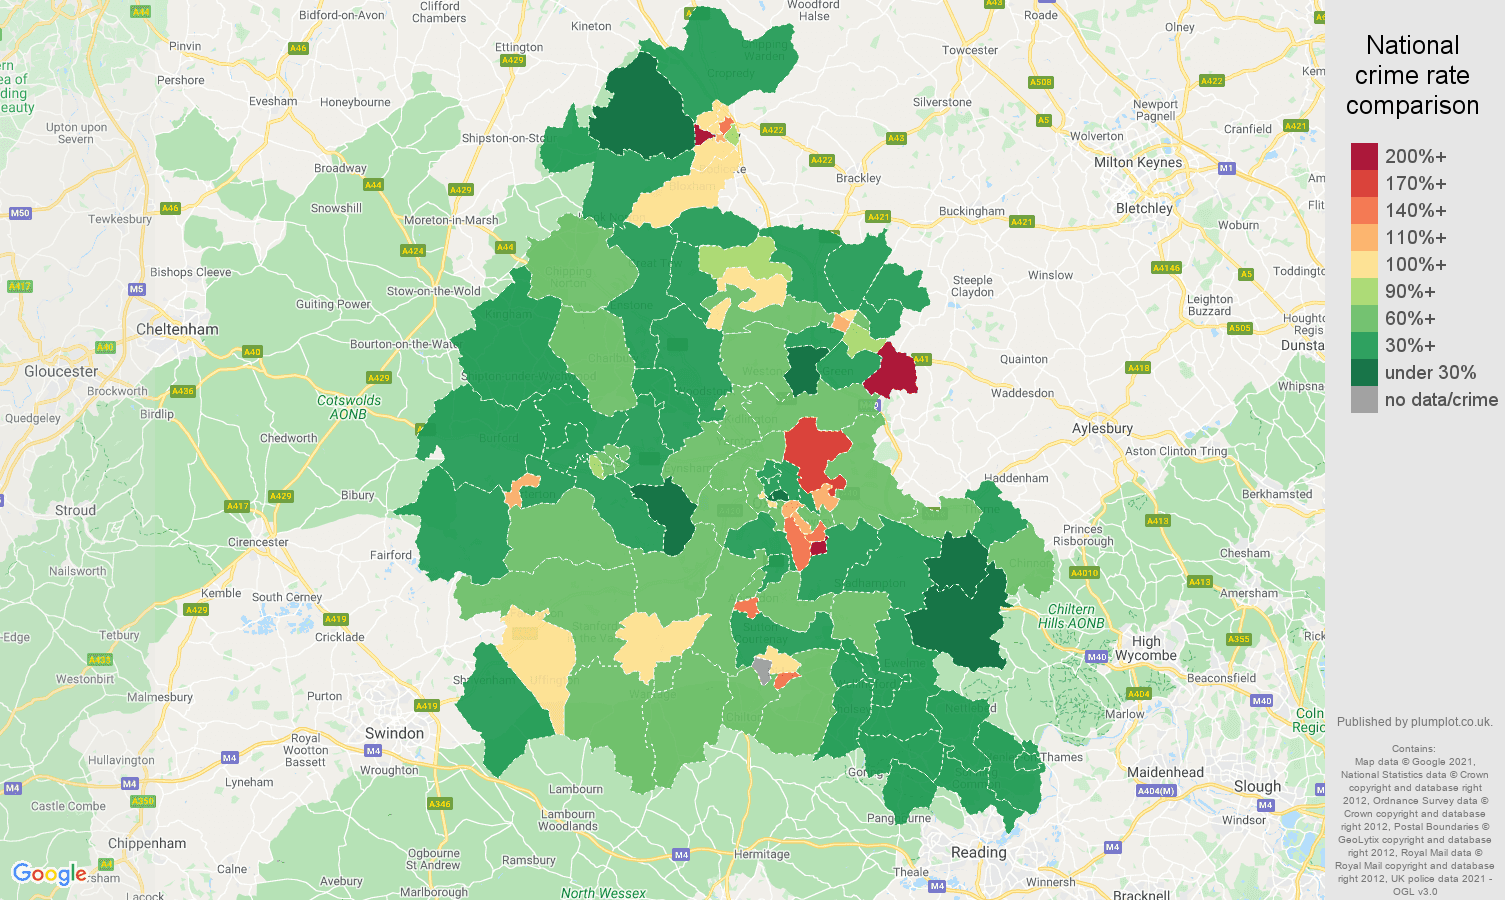 Oxfordshire violent crime rate comparison map